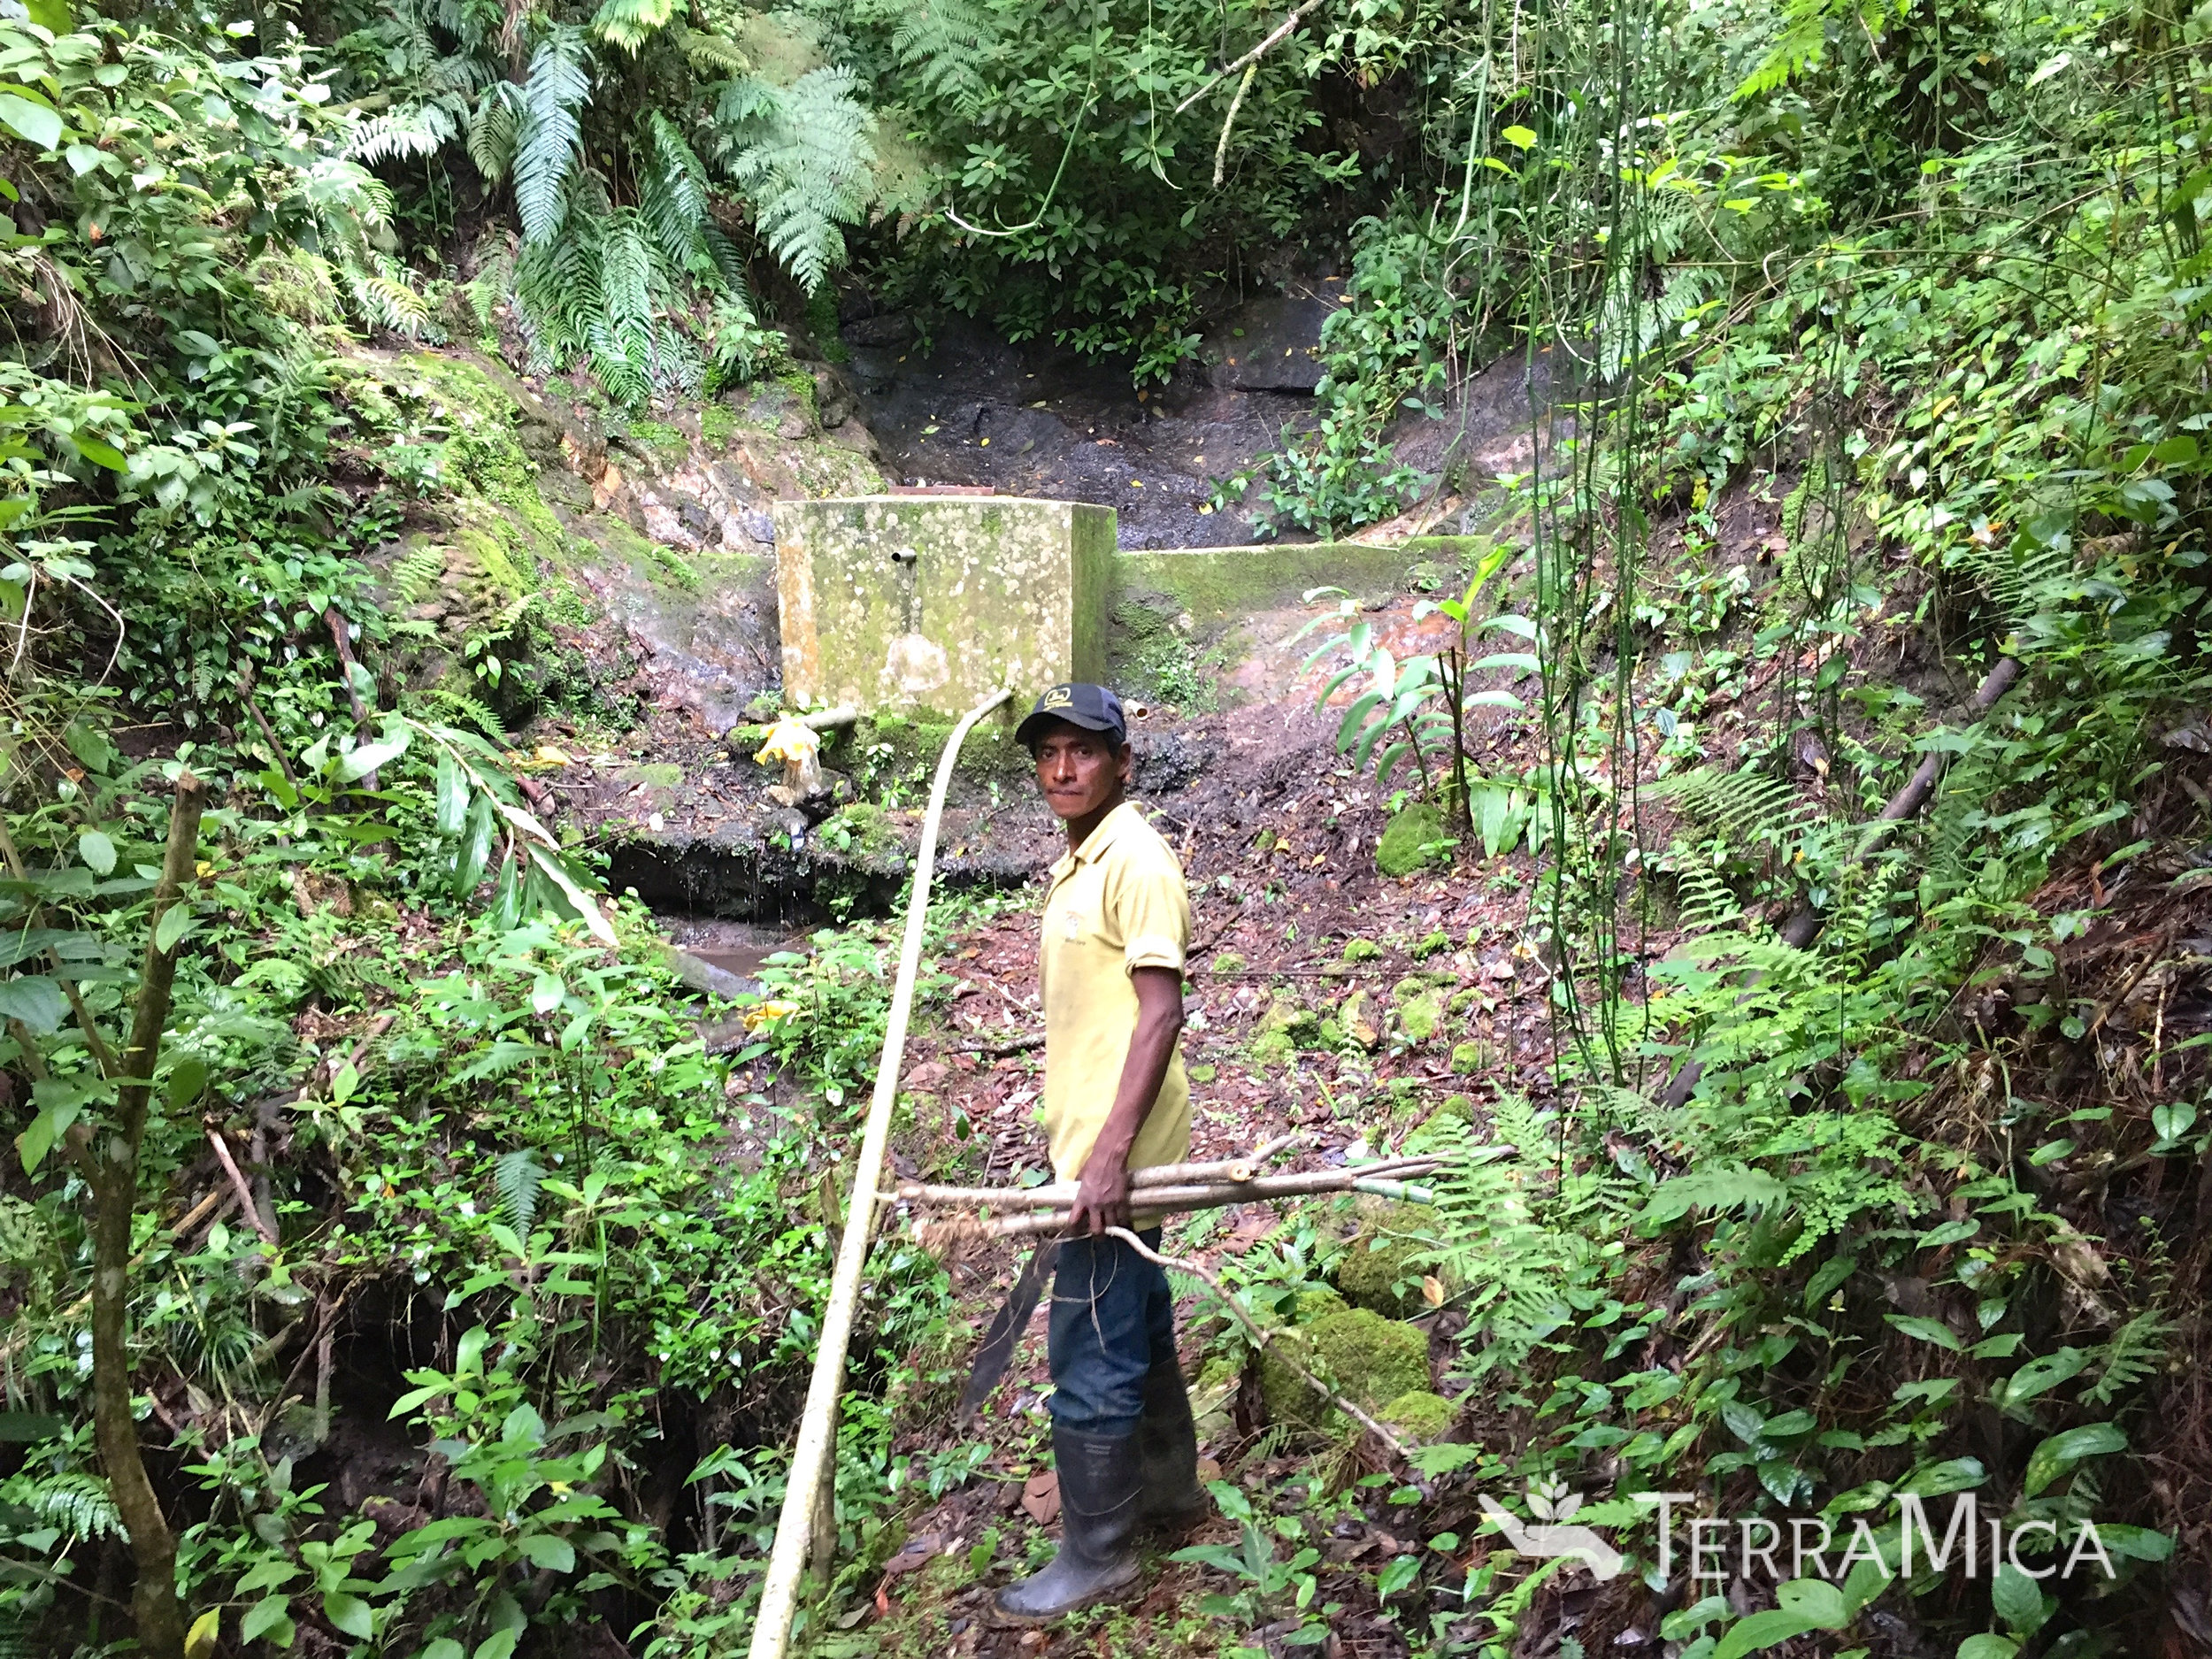 Local villager working with TerraMica on the pipe repair from the water source to the reservoir.